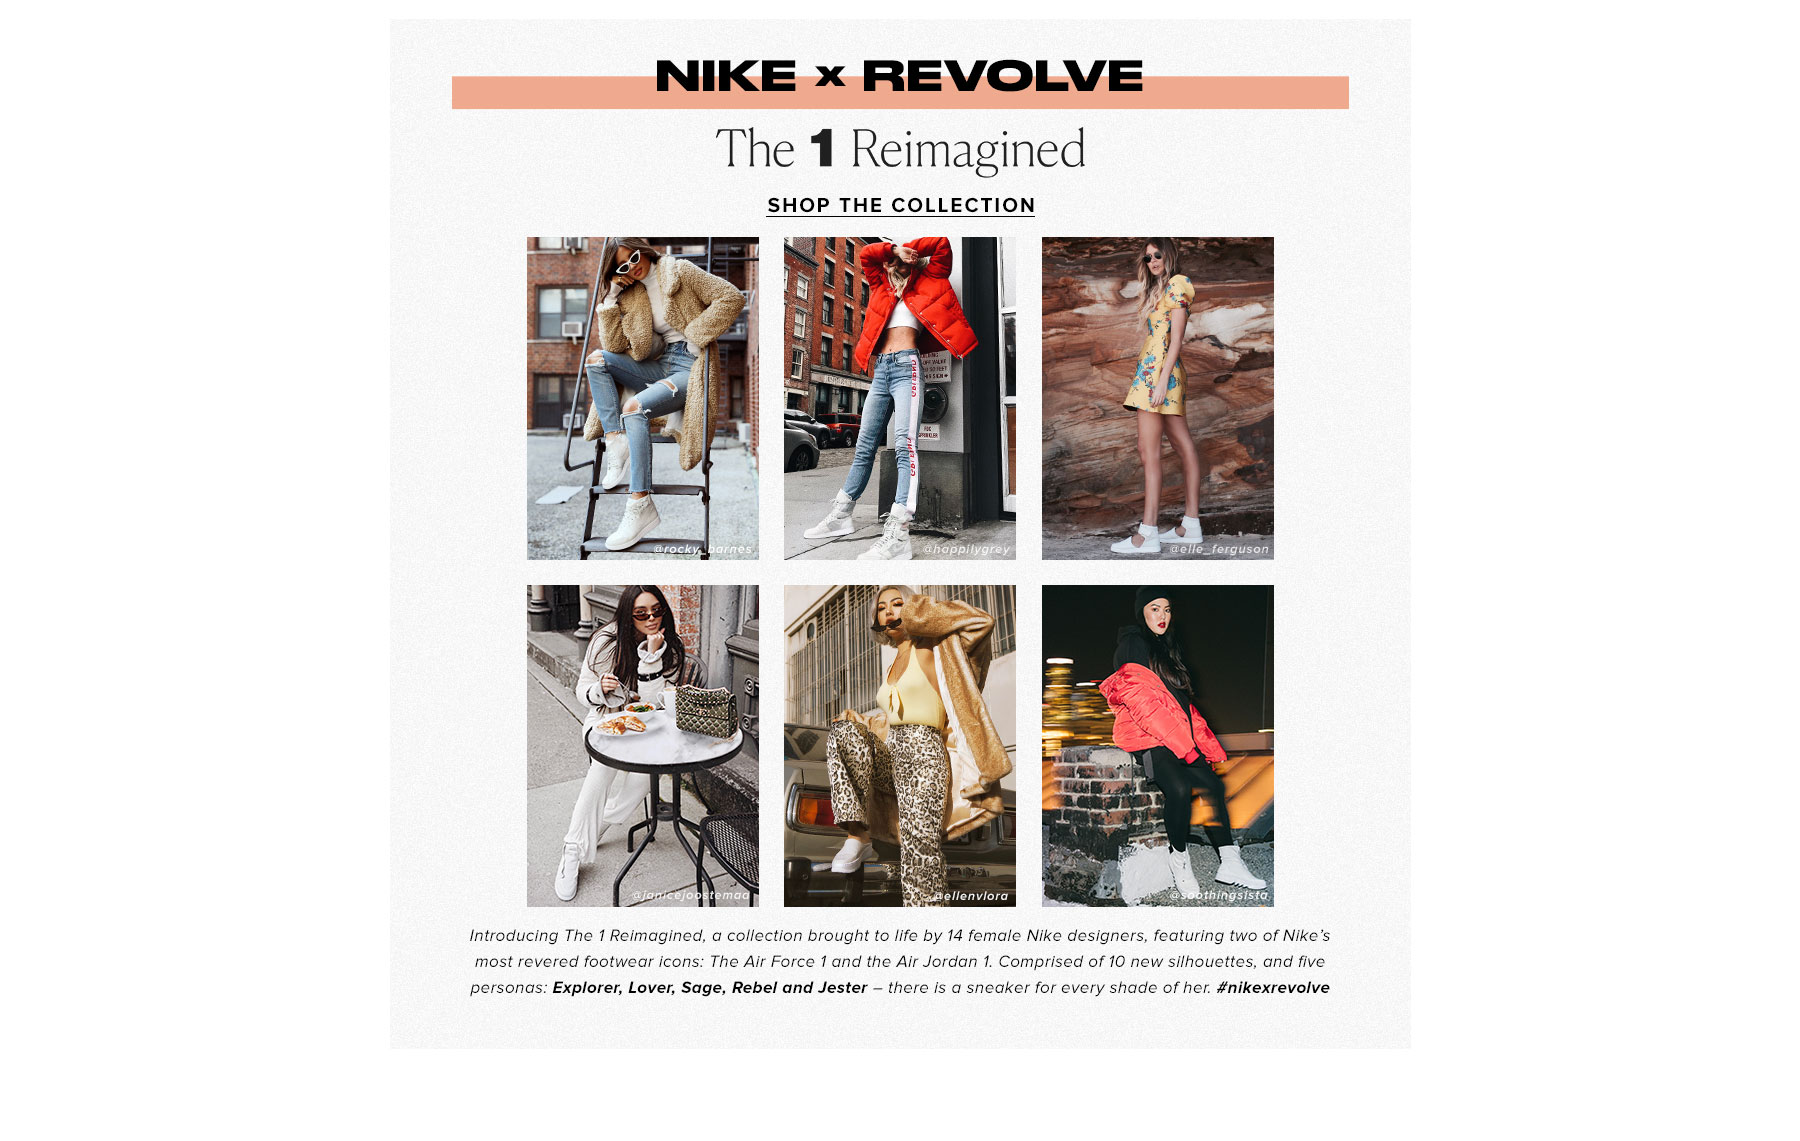 Nike x REVOLVE: The 1s Reimagined Collection. Introducing The 1 Reimagined, a collection brought to life by 14 female Nike designers, featuring two of Nike's most revered footwear icons: The Air Force 1 and the Air Jordan 1. Comprised of 10 new silhouettes, and five personas: Explorer, Lover, Sage, Rebel and Jester – there is a sneaker for every shade of her. nikexrevolve. Shop the Collection.